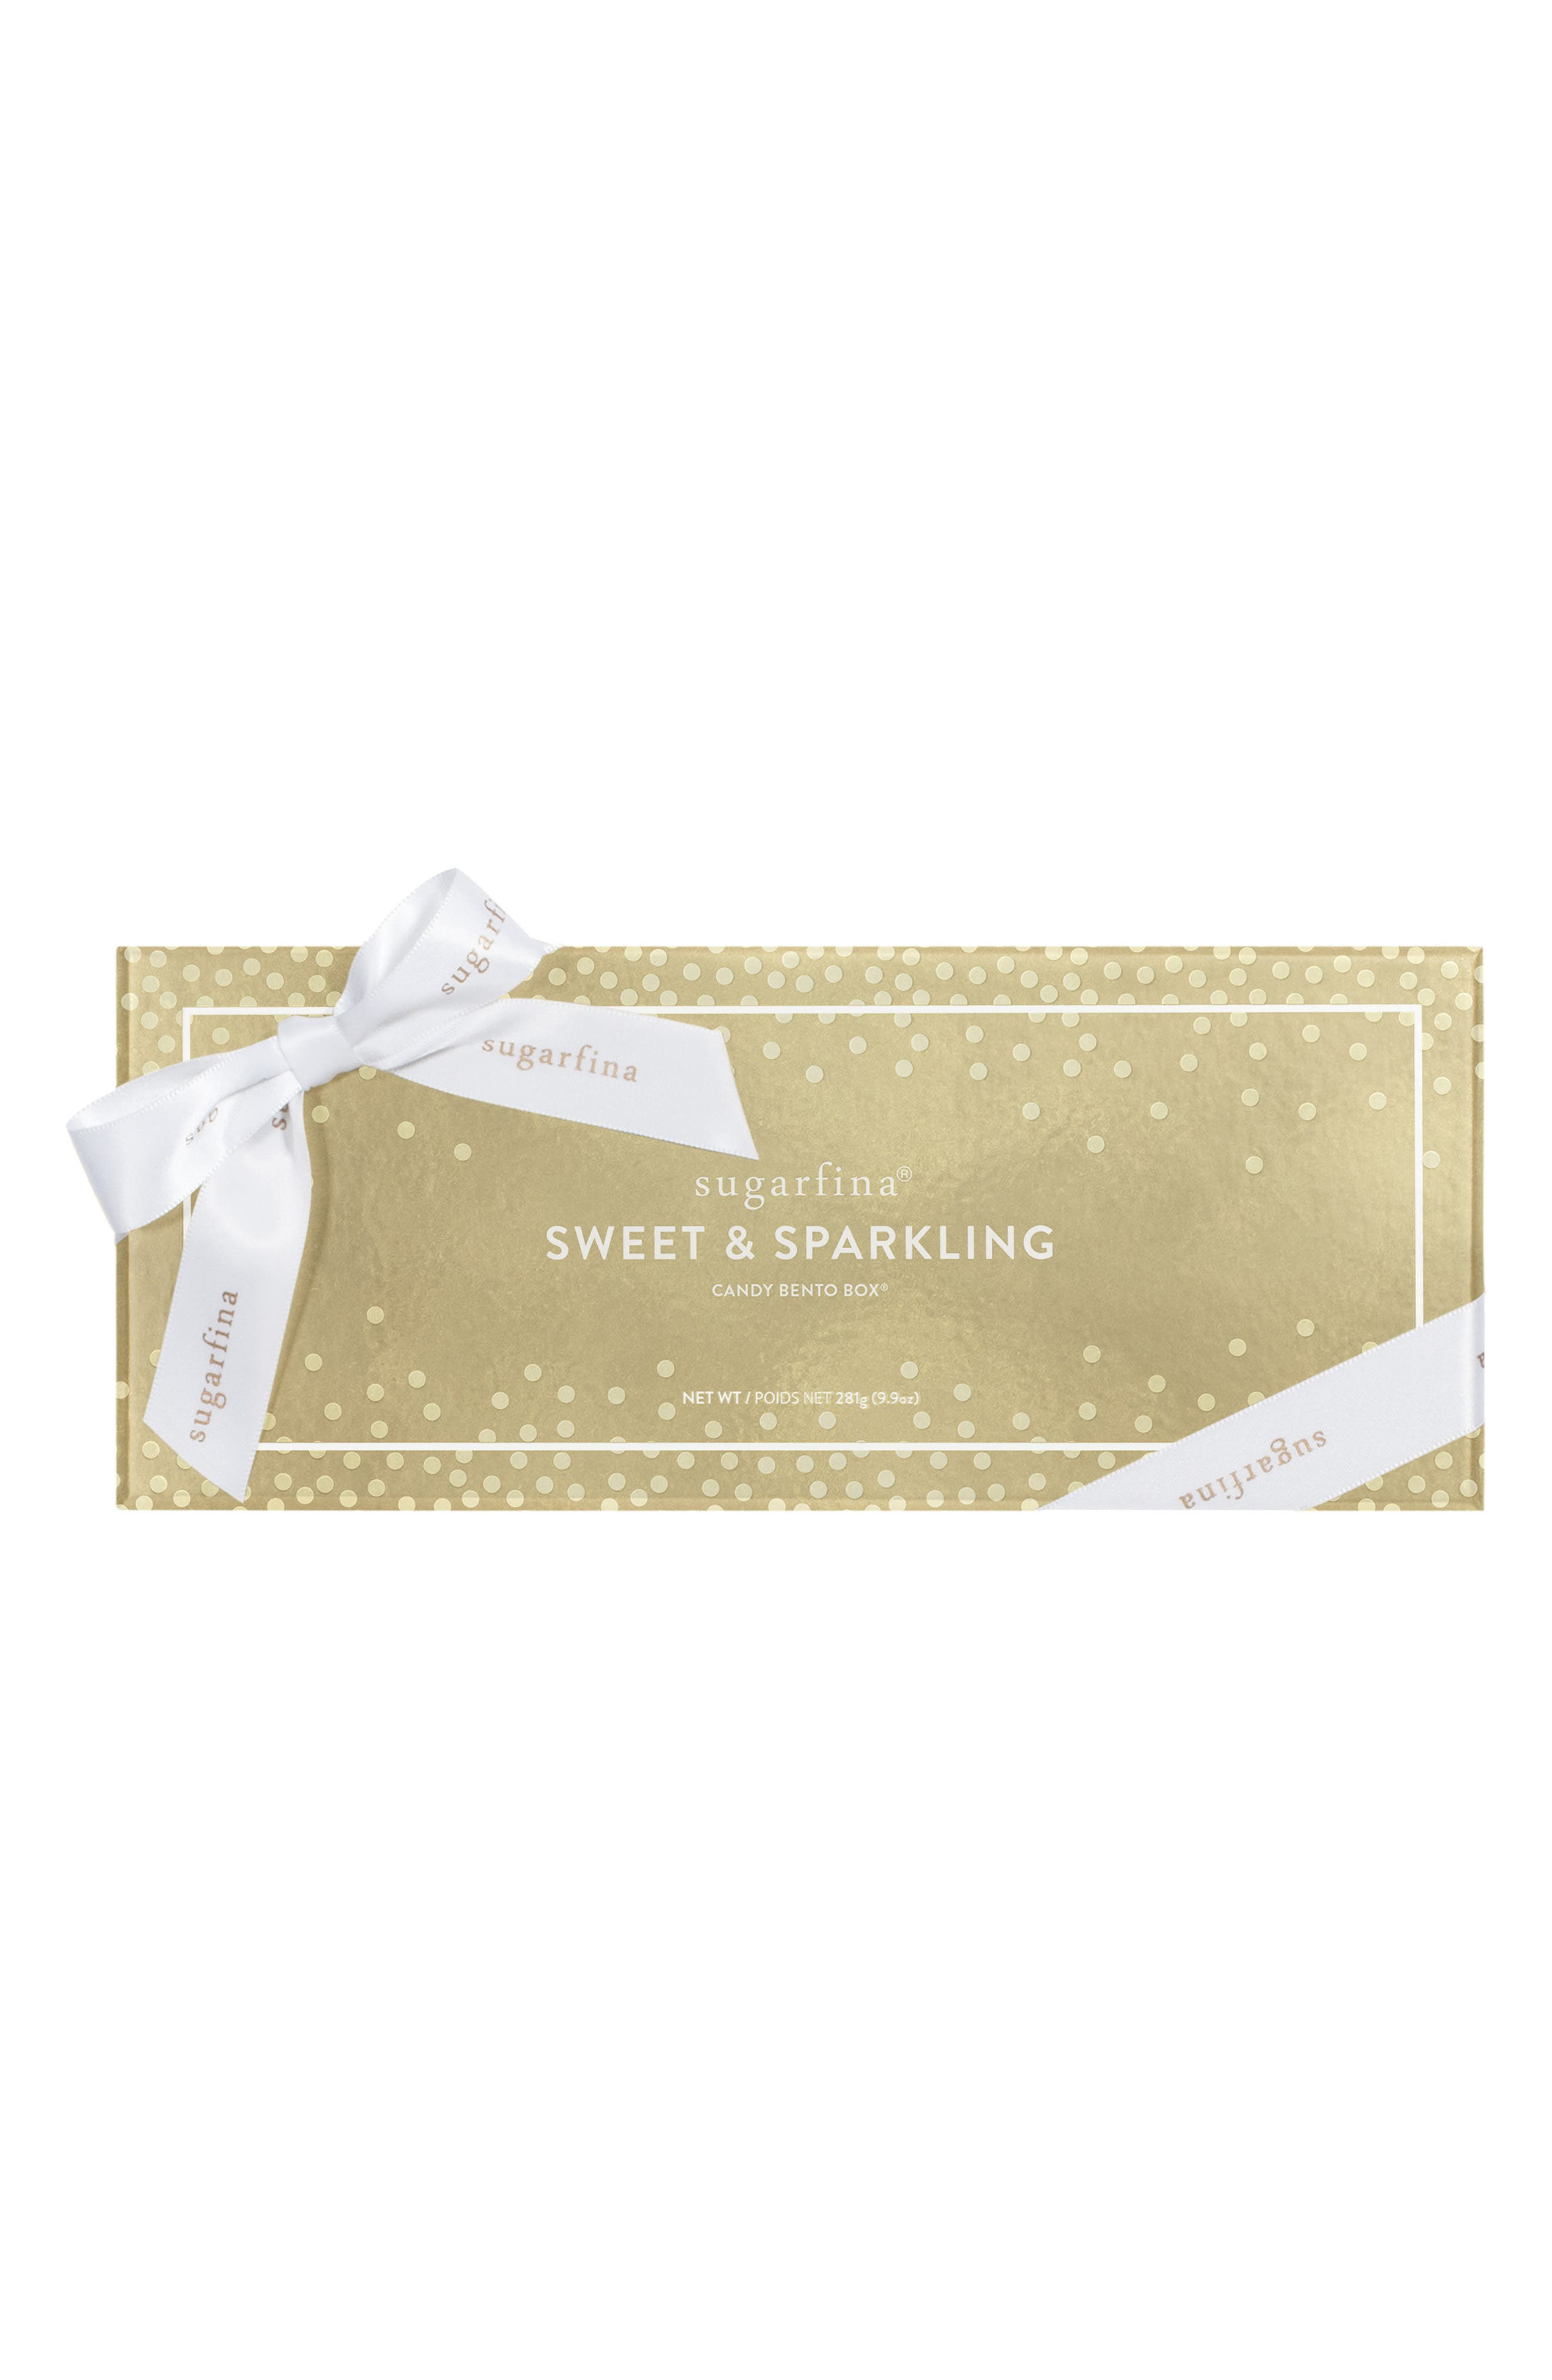 Sweet & Sparkling Set of 3 Candy Boxes,                             Alternate thumbnail 2, color,                             METALLIC GOLD